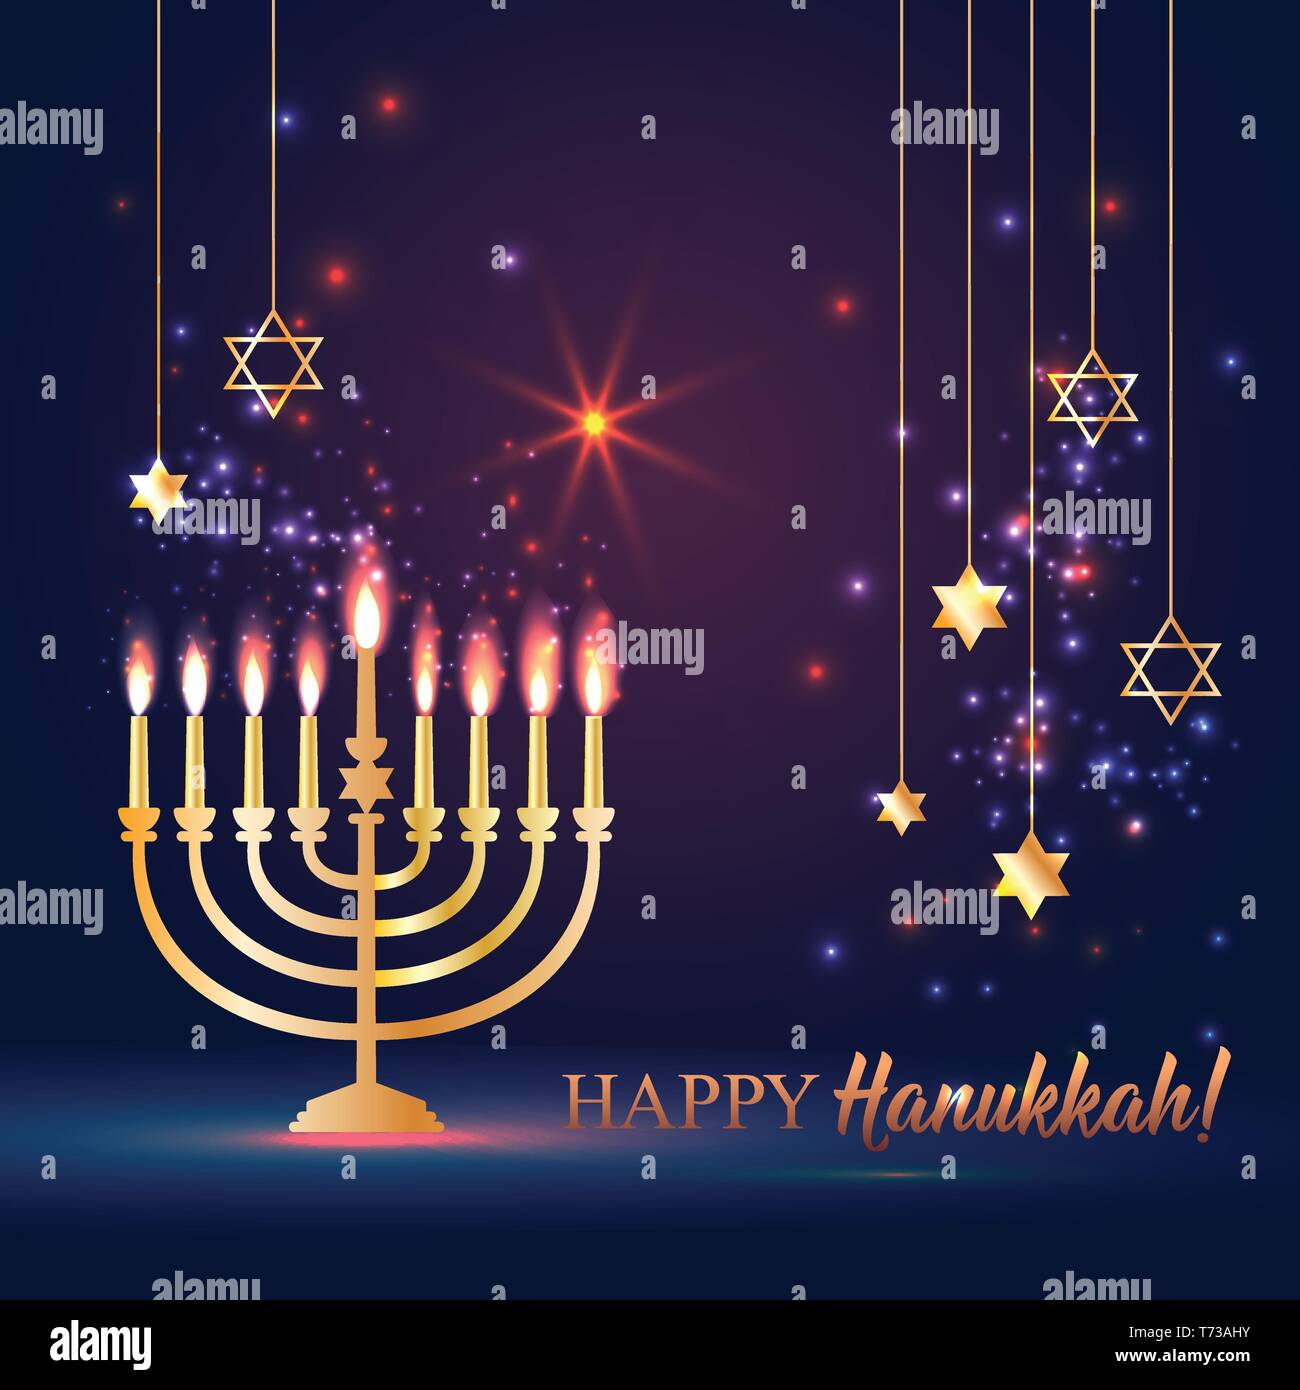 Happy Hanukkah Shining Background with Menorah, David Star and Bokeh Effect. - Stock Vector